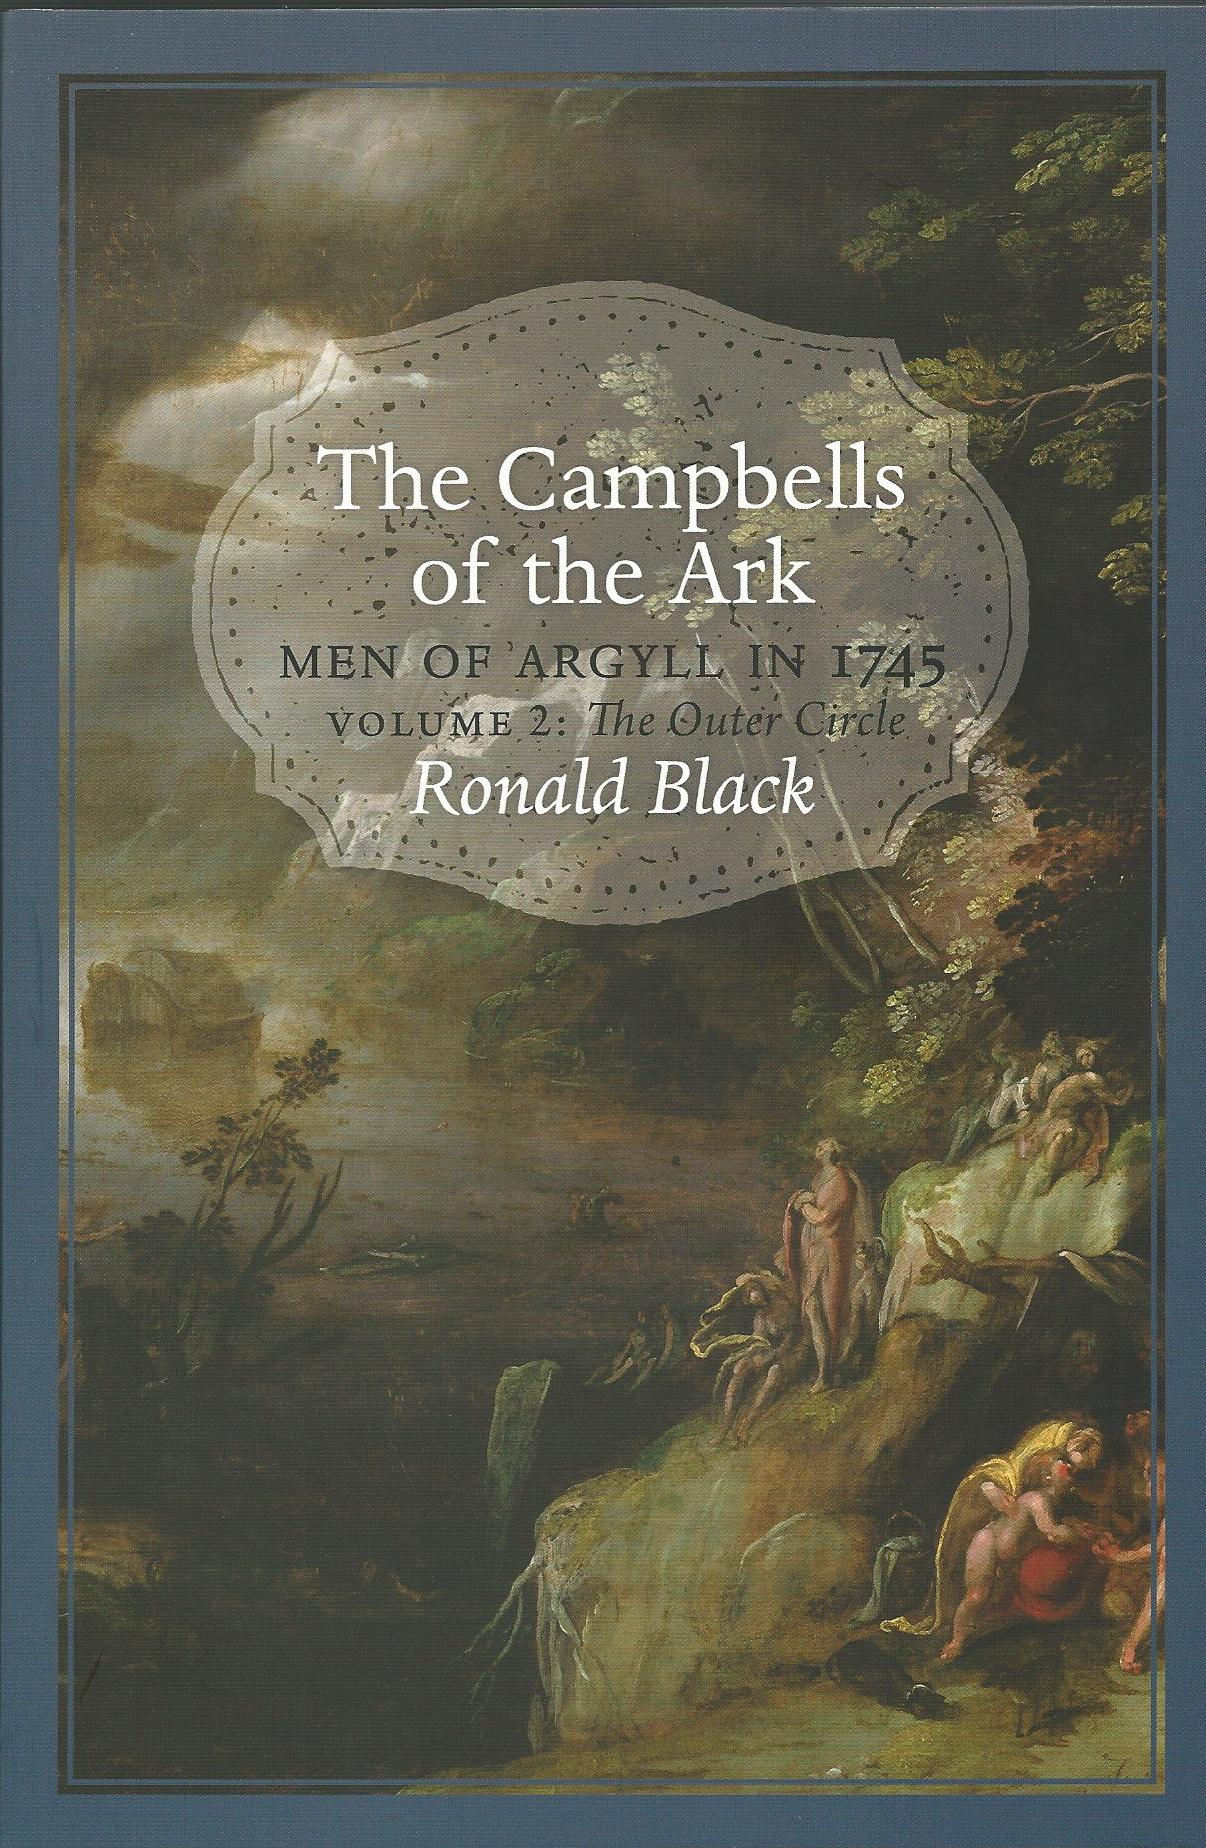 Image for The Campbells of the Ark: Men of Argyll in 1745 - The Inner Circle & The Outer Circle - 2 Volumes Complete